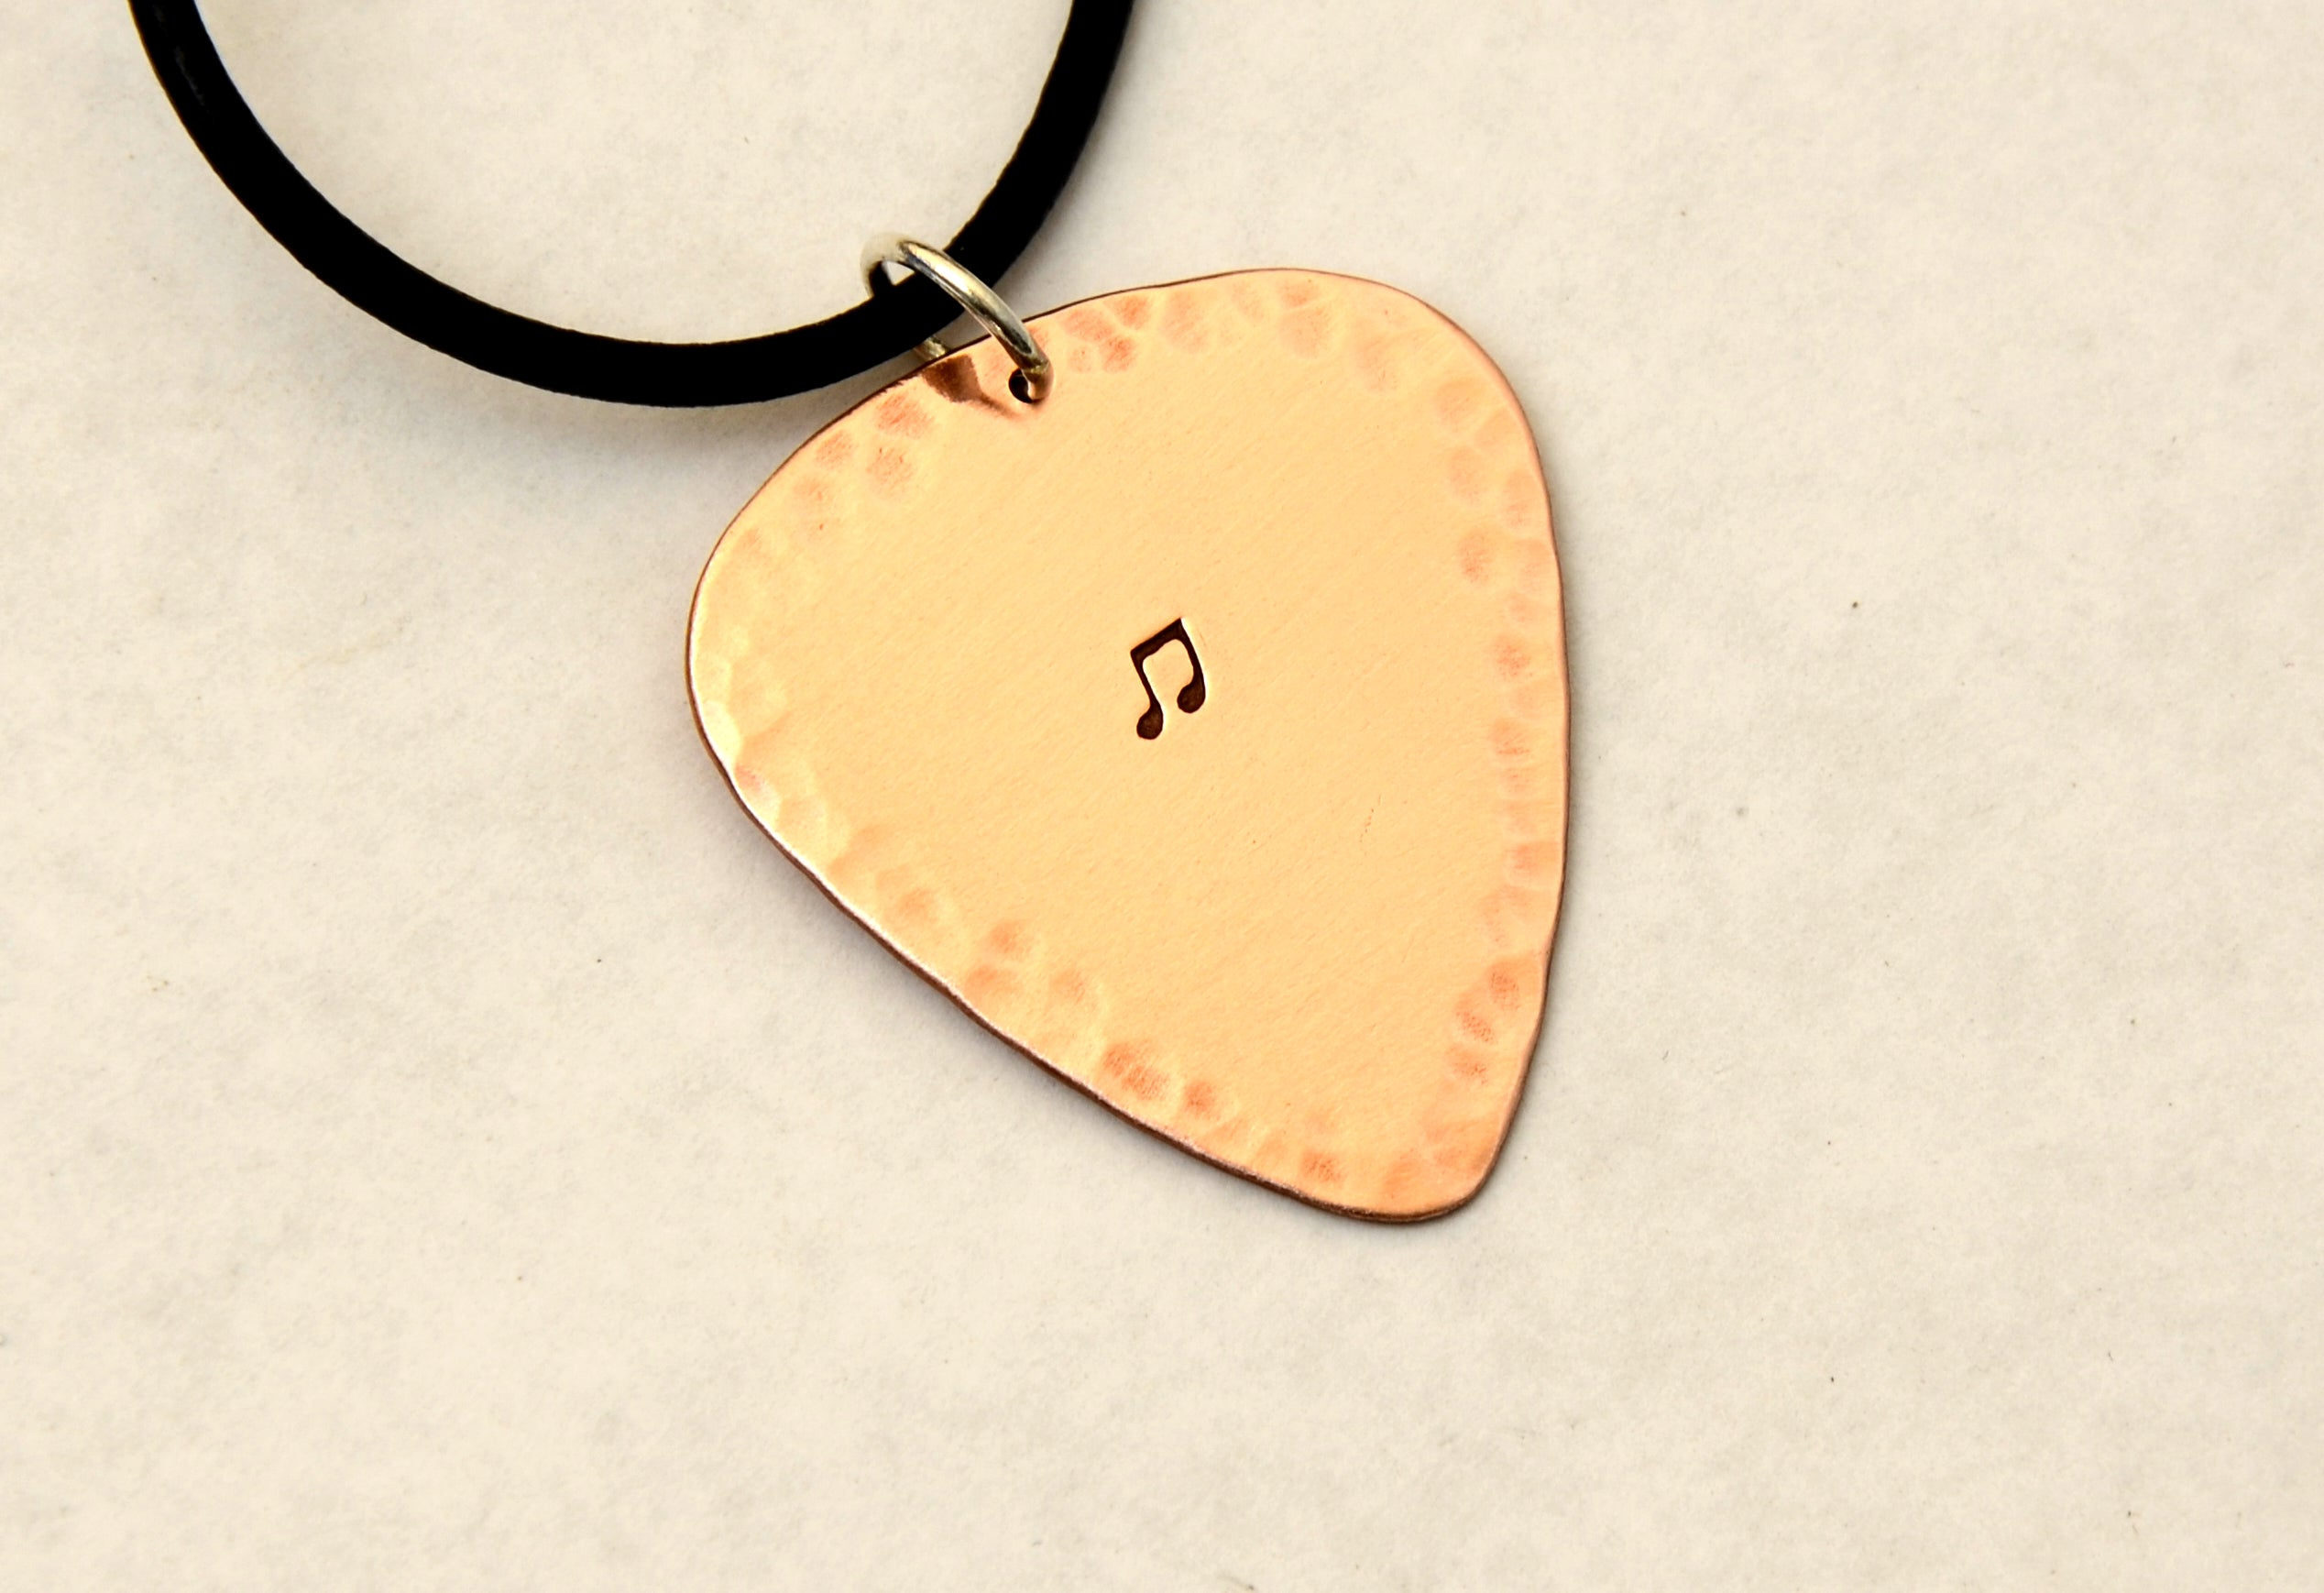 gift clef treble necklace teacher pin musician note for bass pendant music